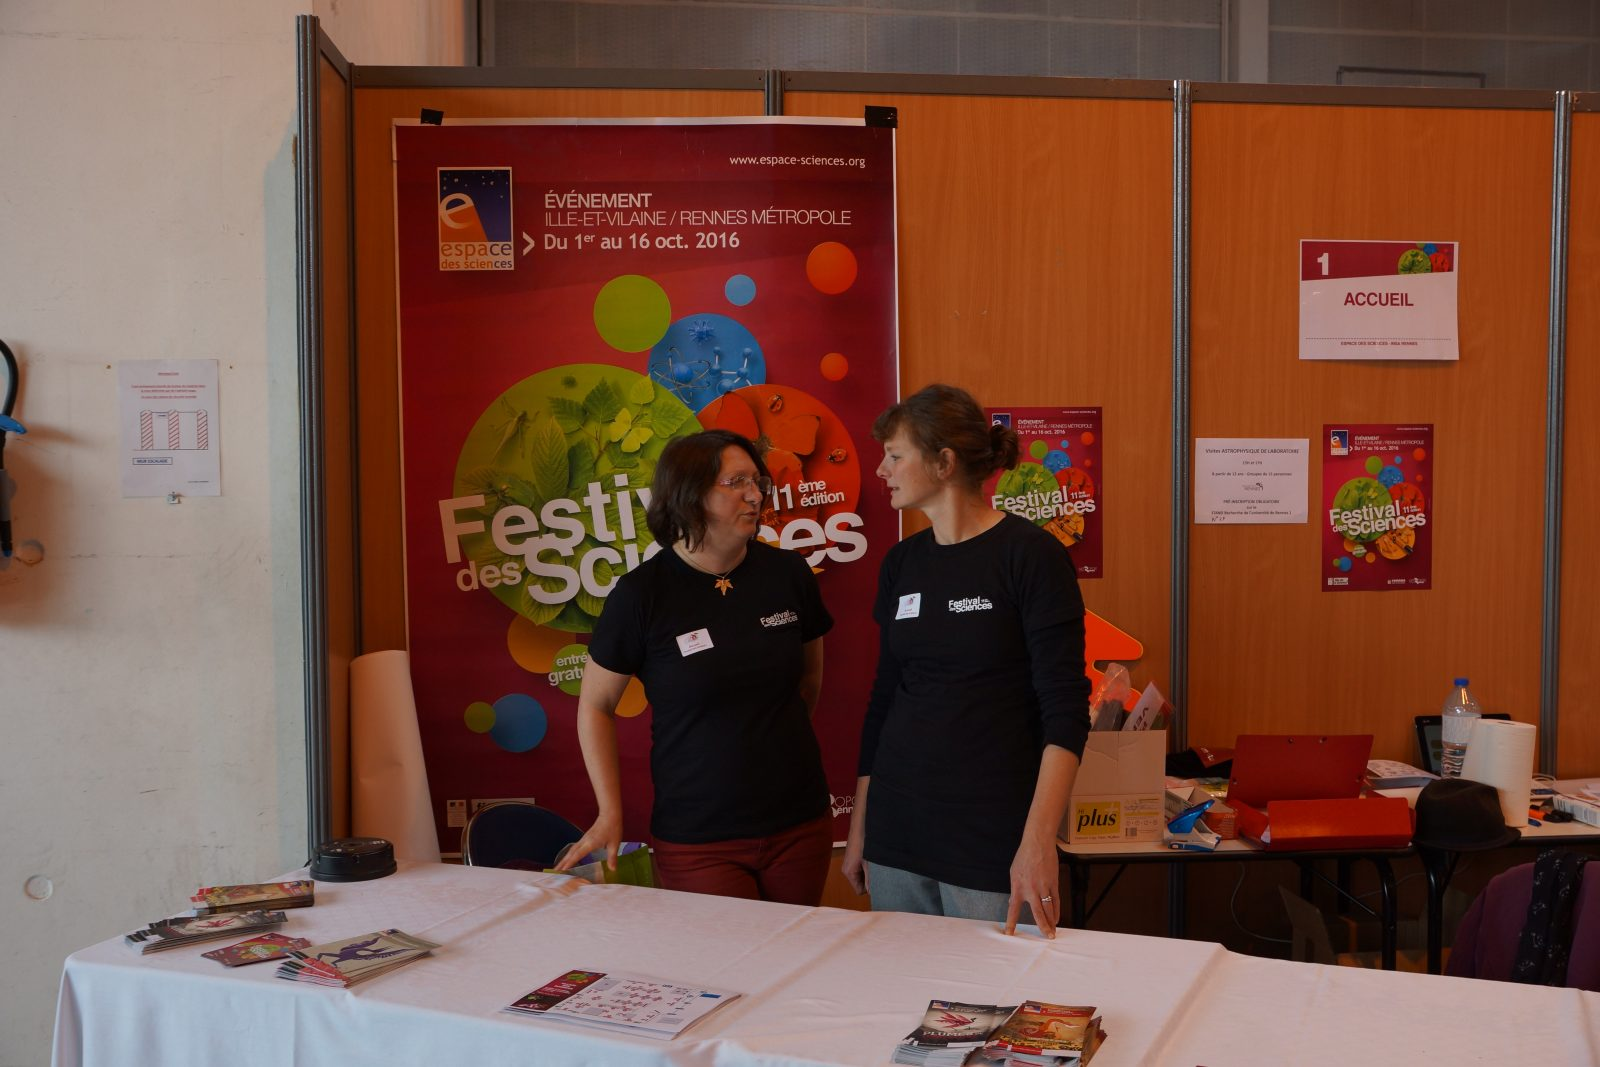 festival des sciences 2016 (3)